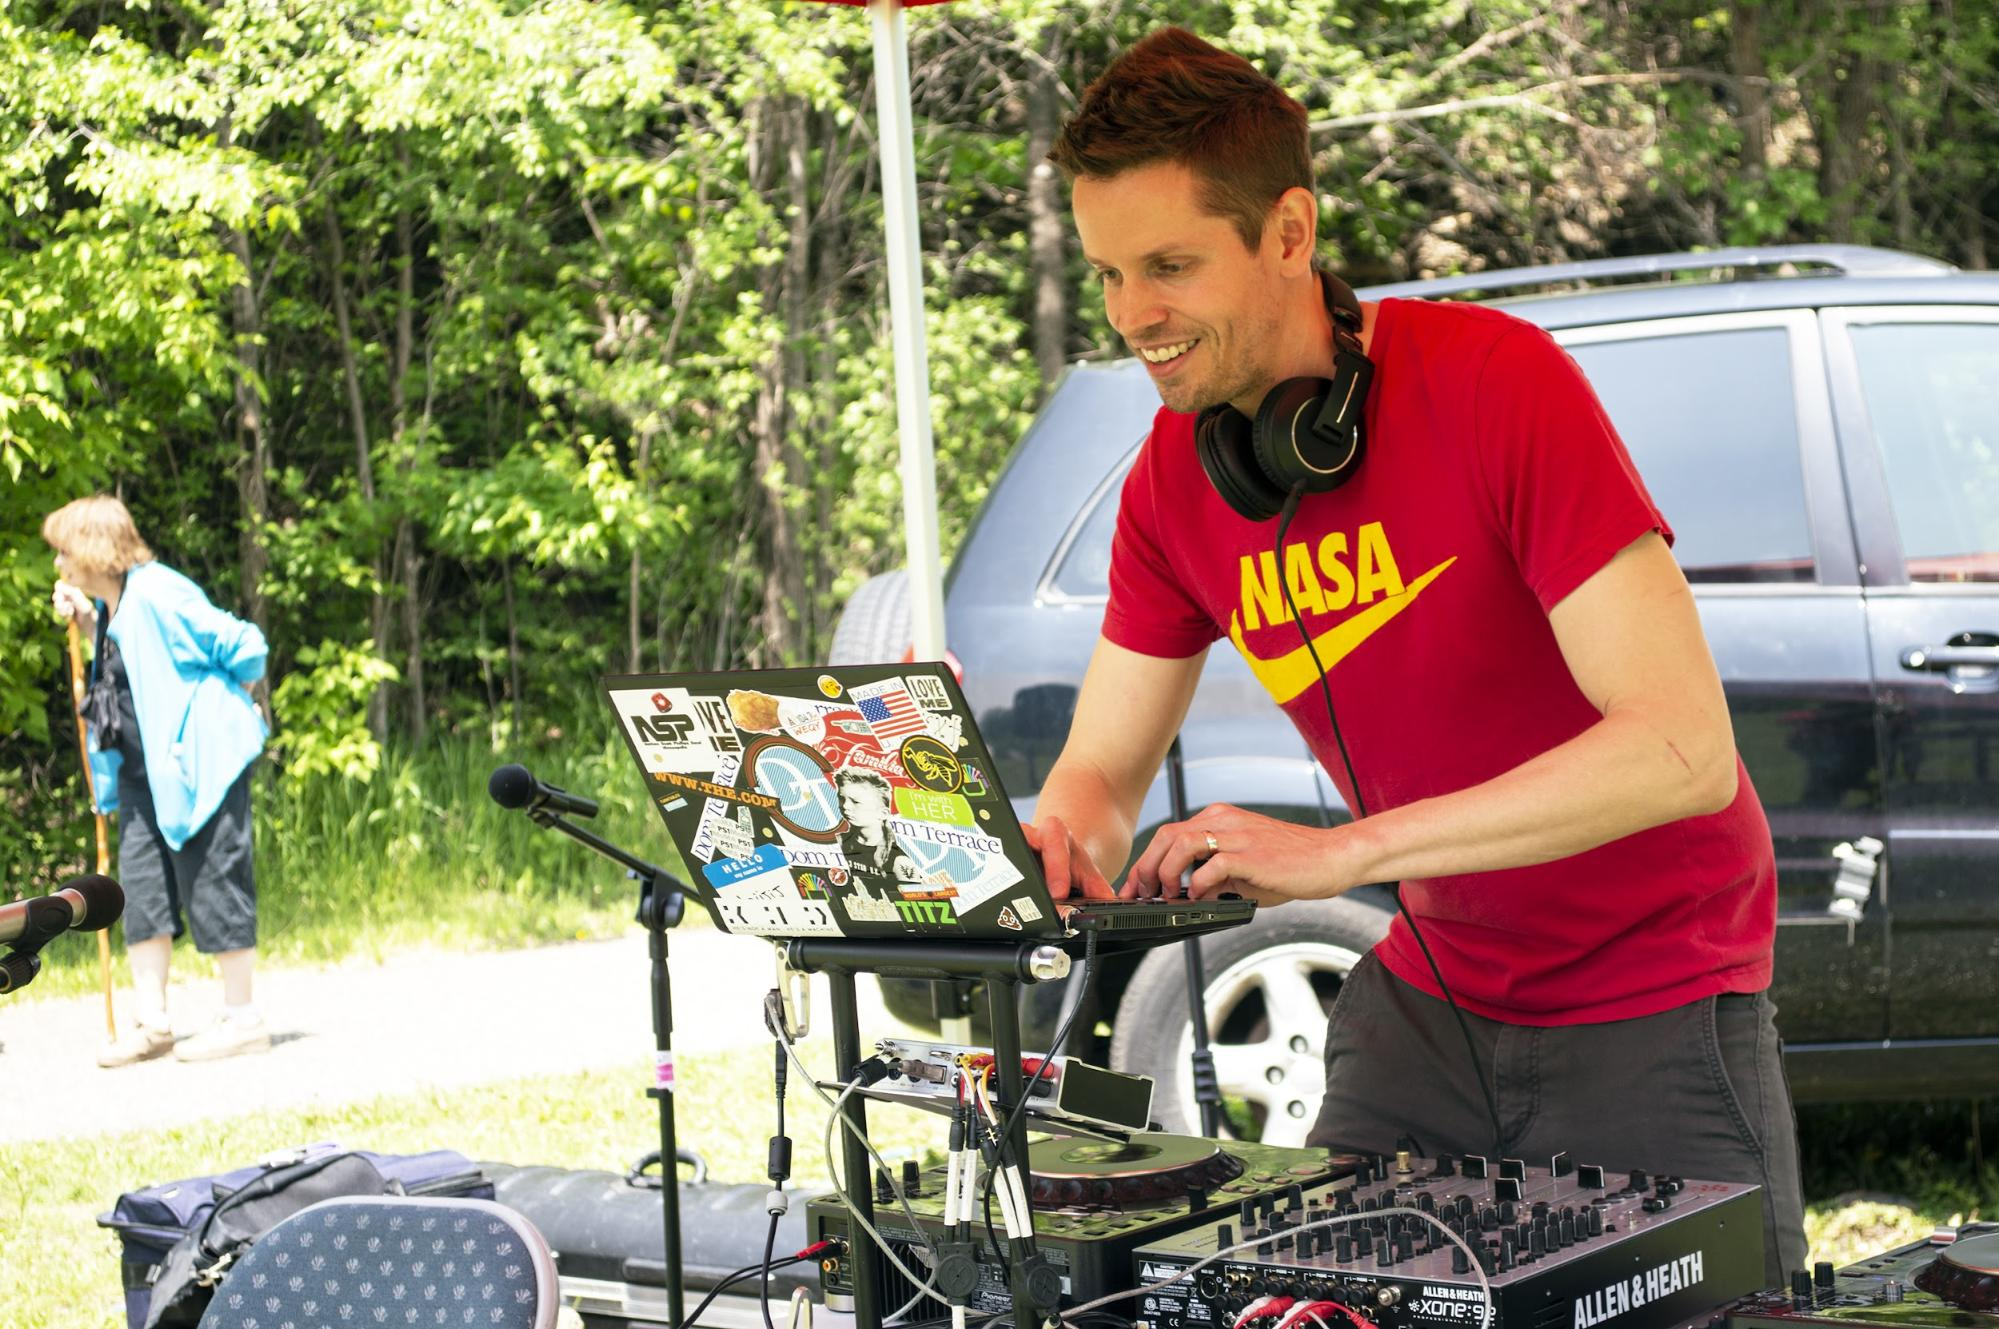 A DJ from East Side radio station WEQY (104.7 FM) gets the crowd excited at the main stage. Established in 2015, WEQY is one of the sponsors of Art in the Hollow and is the only radio station broadcasting from the East Side neighborhood of St. Paul. (Mandy Hathaway / The Metropolitan)